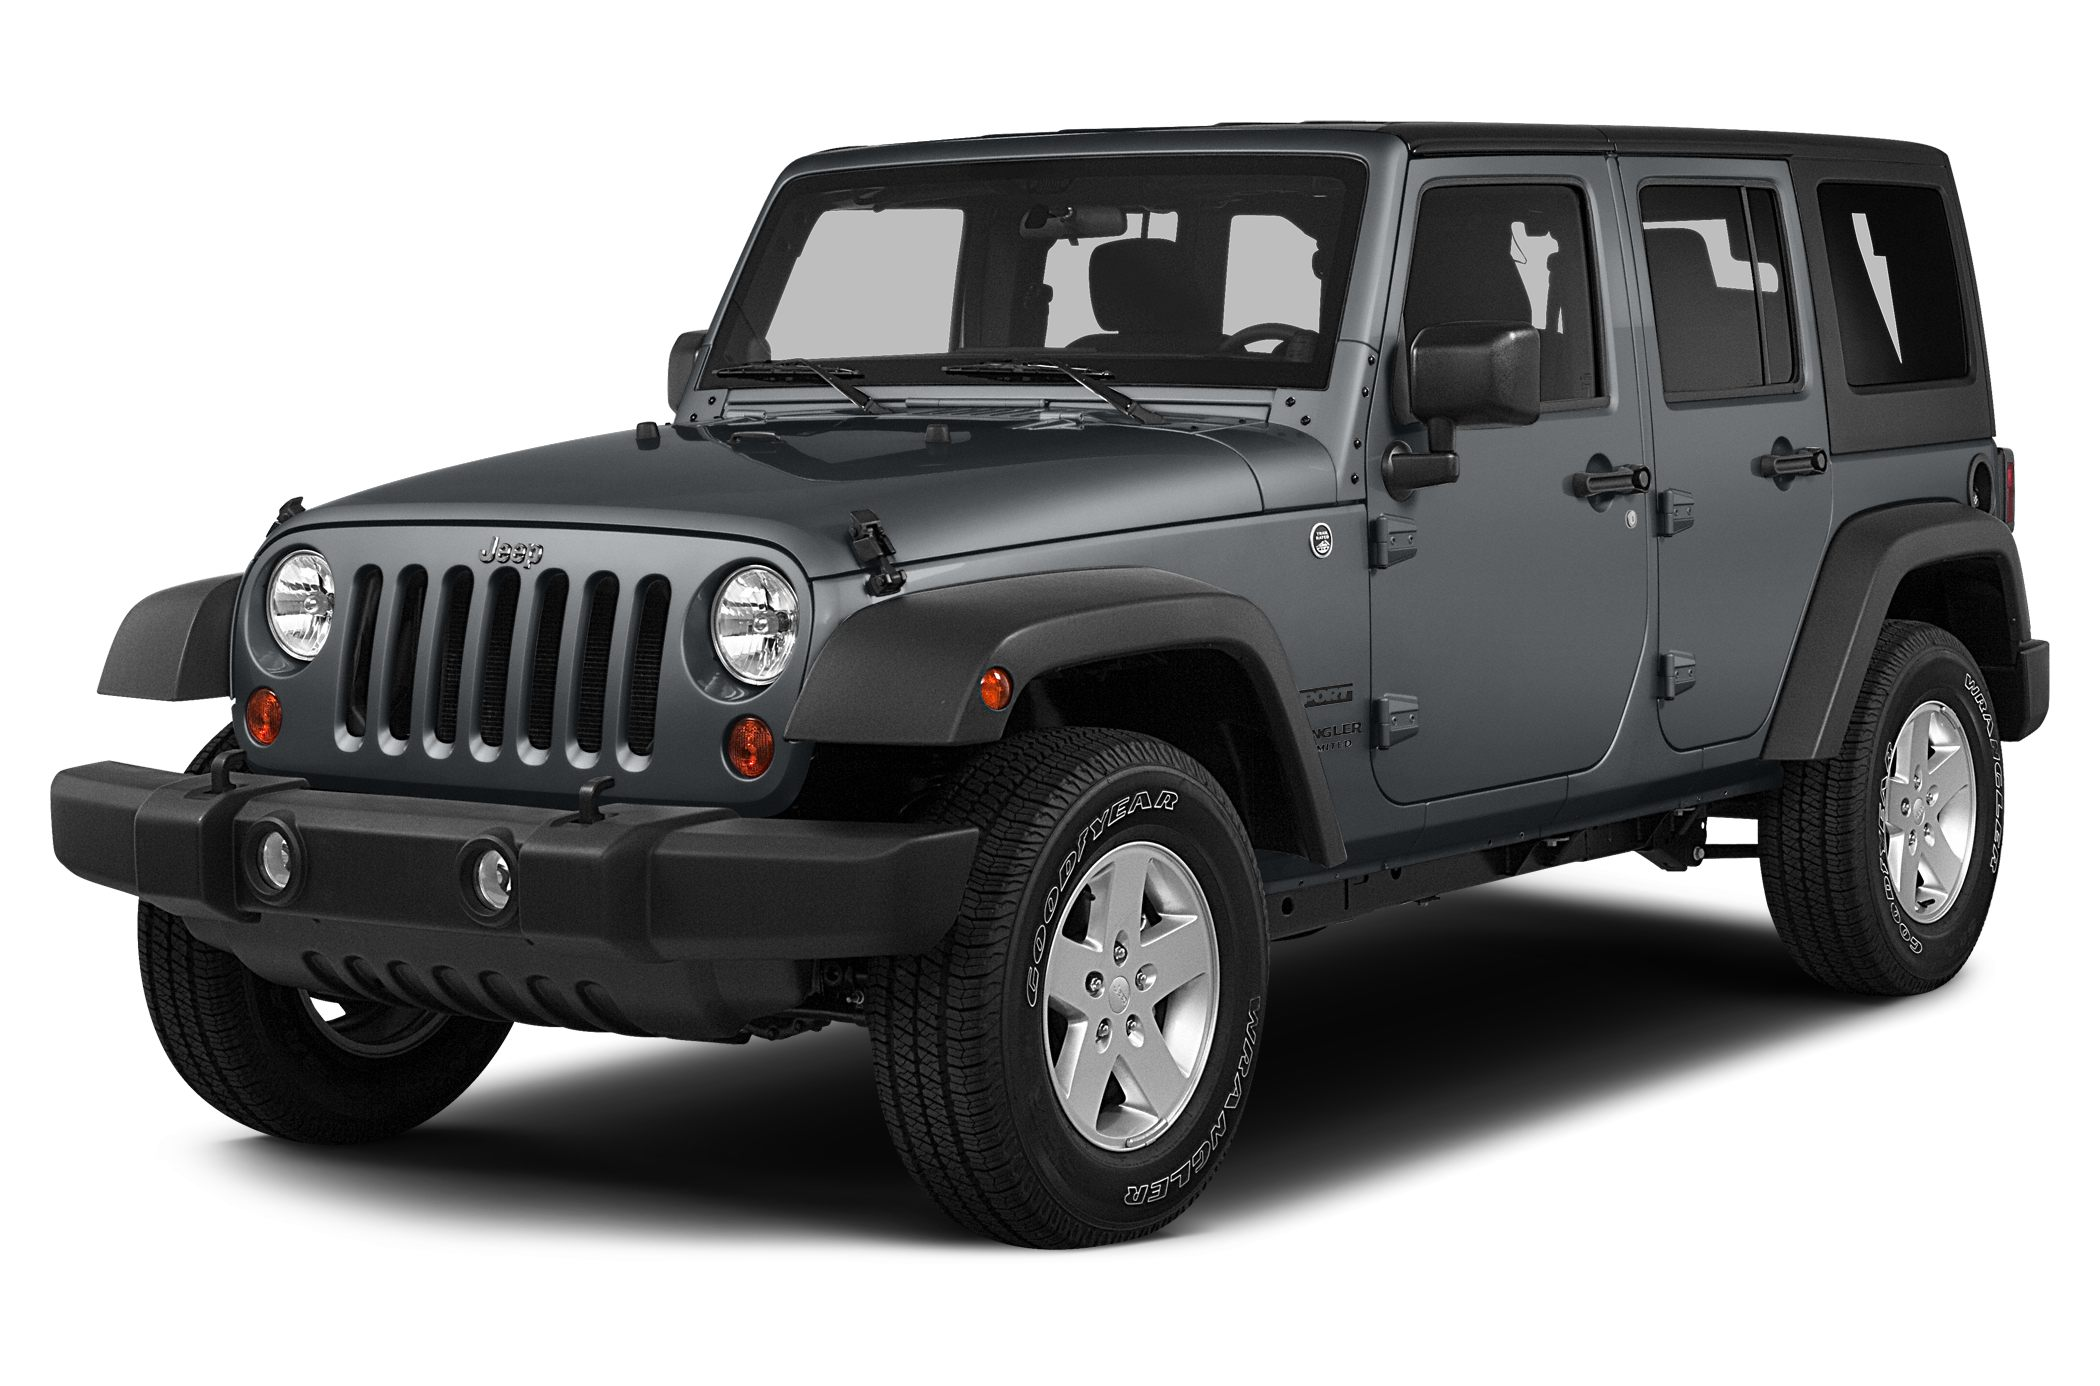 2015 Jeep Wrangler Unlimited Sahara SUV for sale in Winnsboro for $35,977 with 10 miles